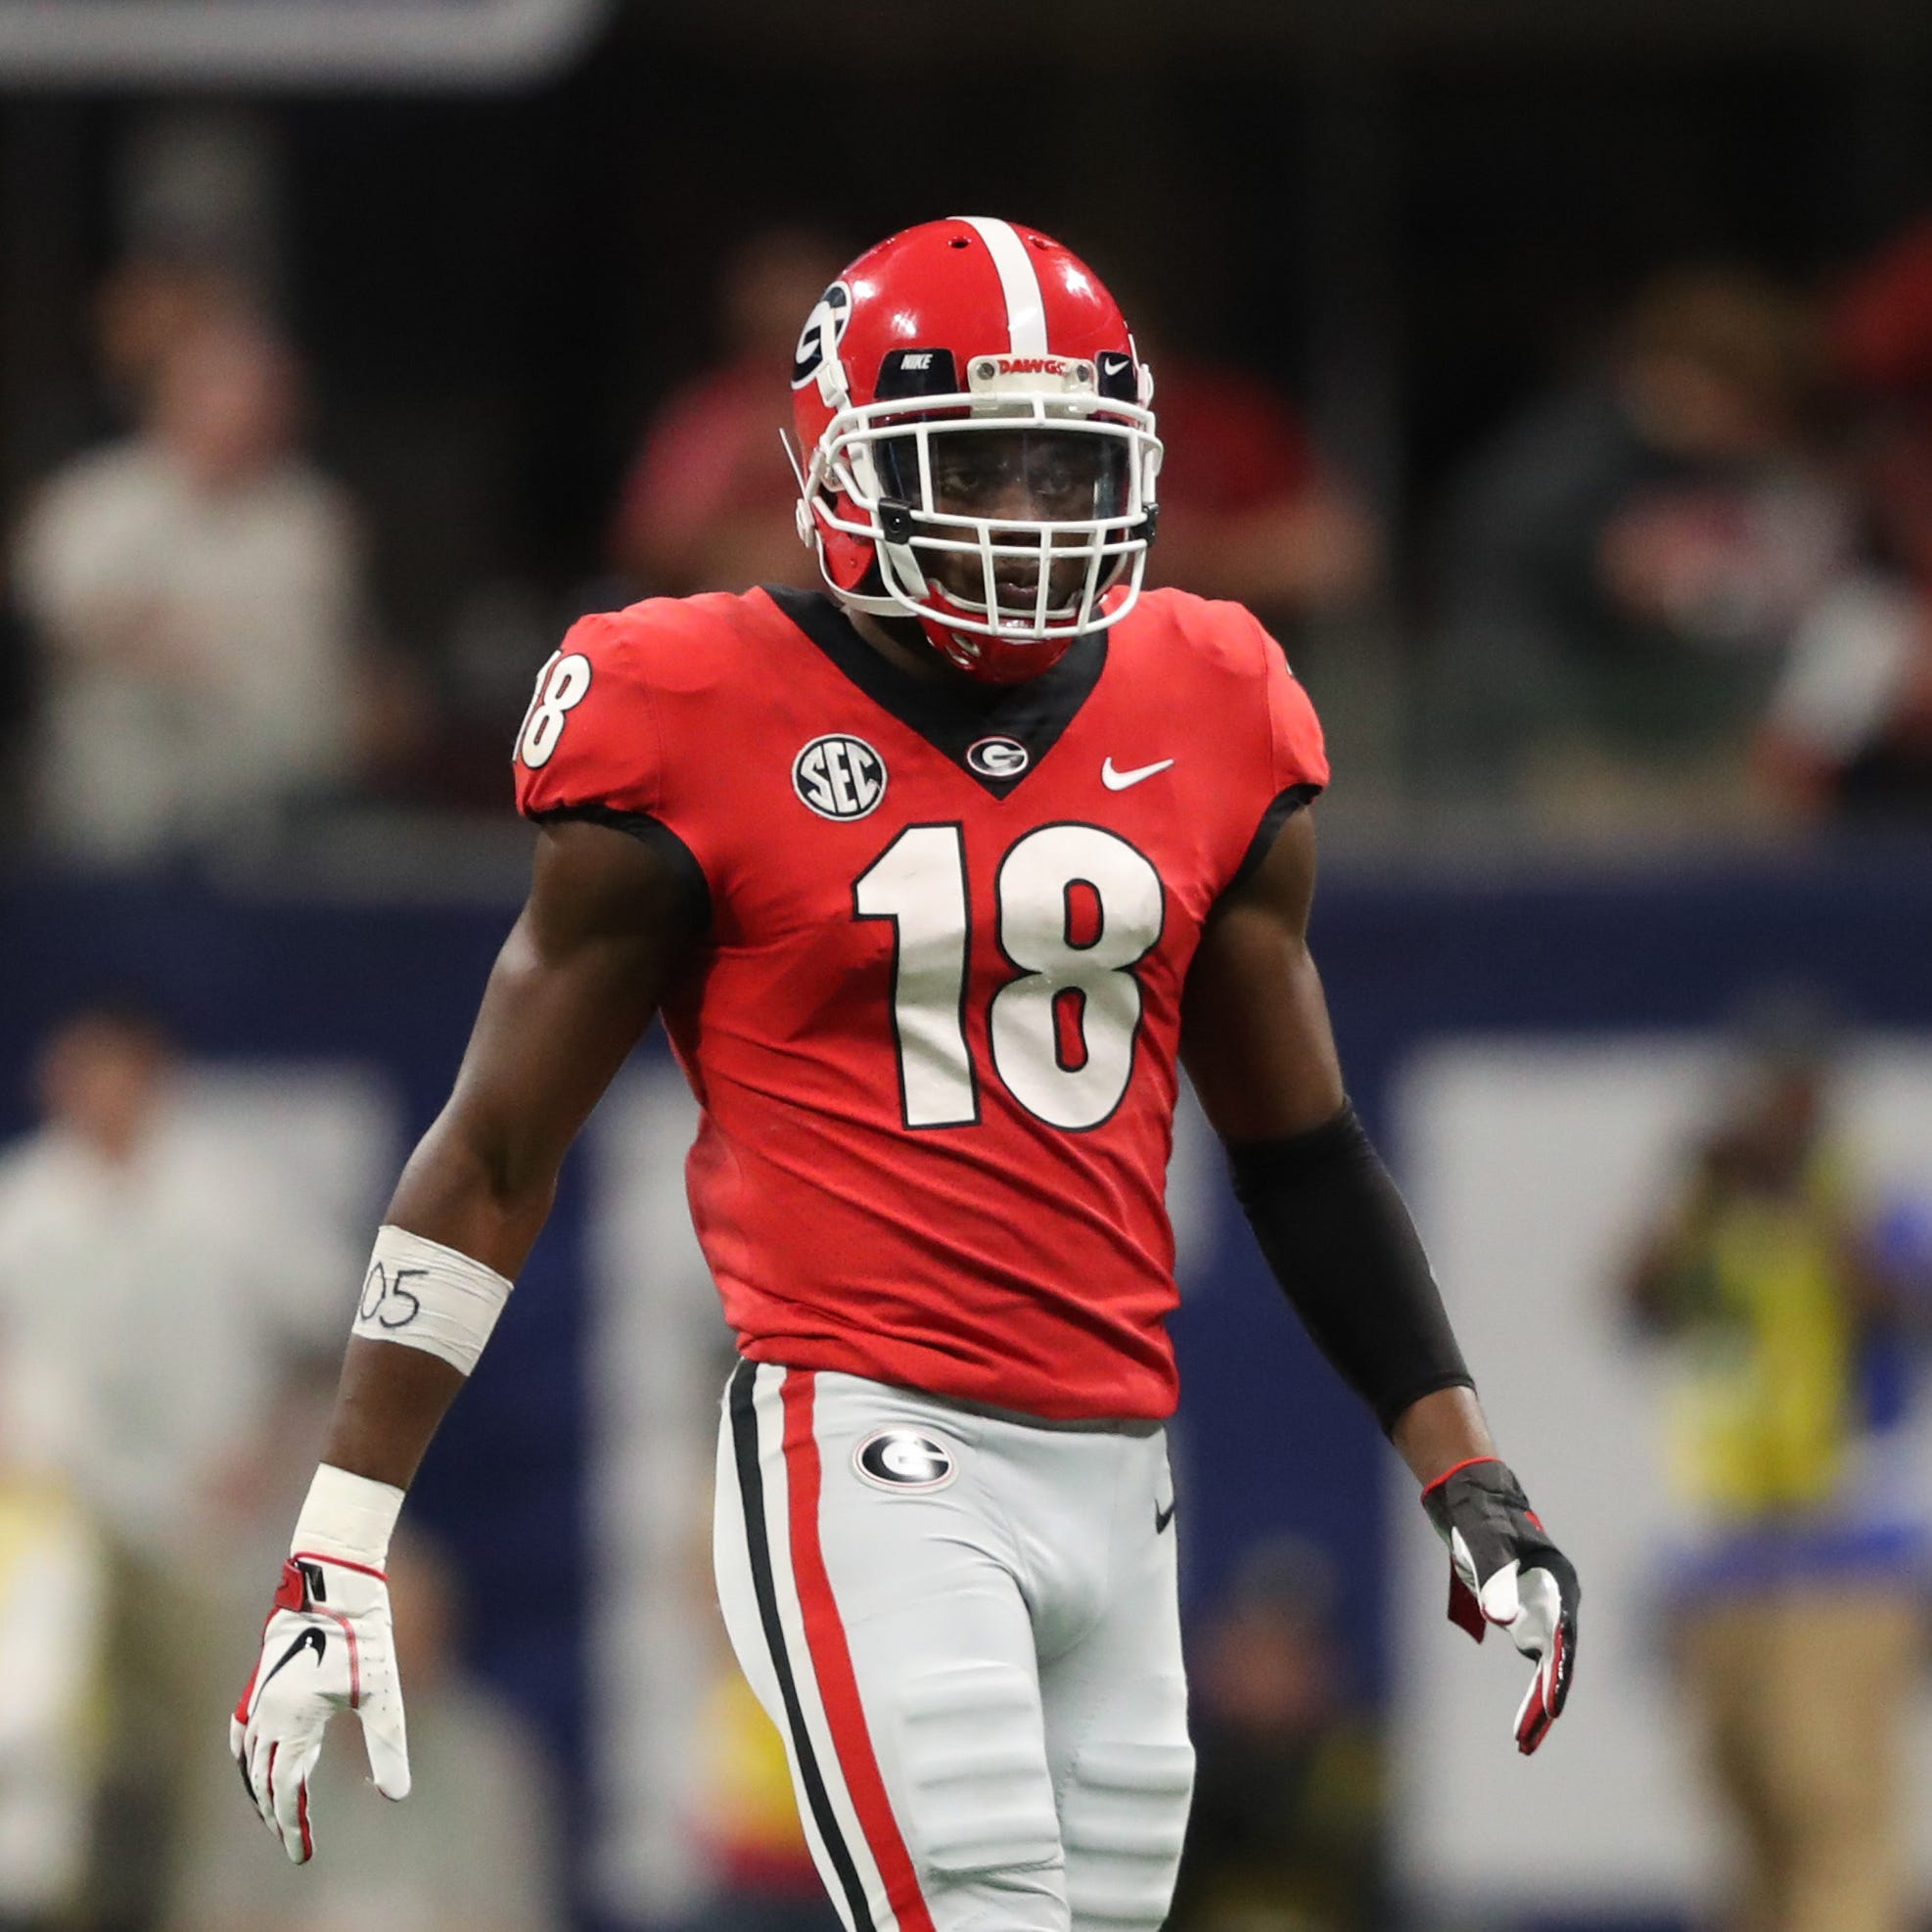 NFL mock draft 2019: Colts could double down on receiver, cornerback